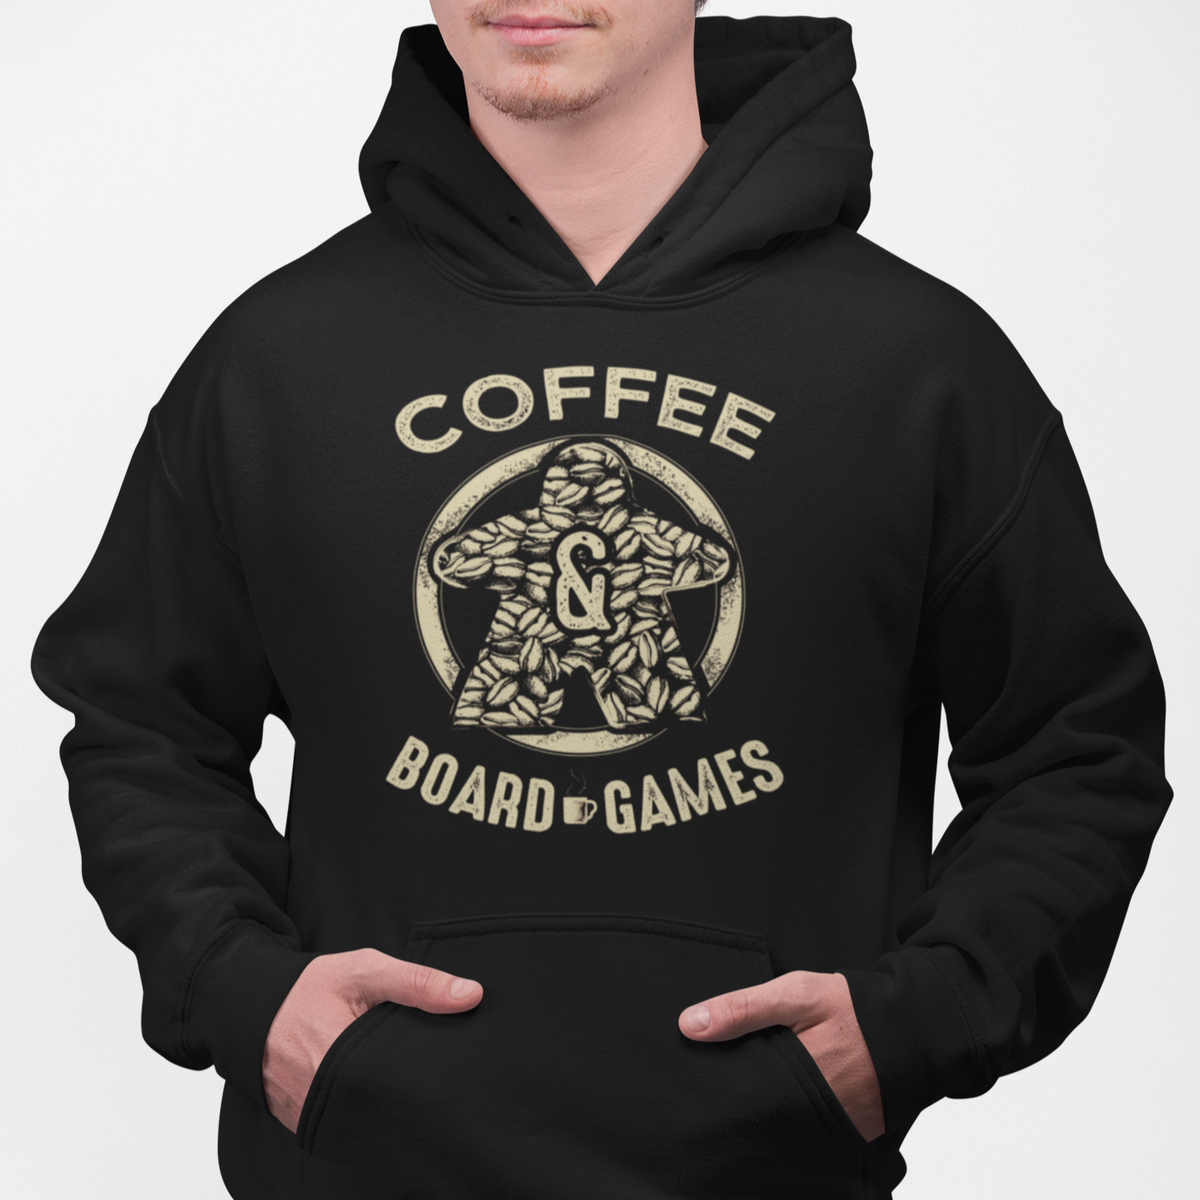 Coffee Bean Meeple Board Game Pullover Hoodie